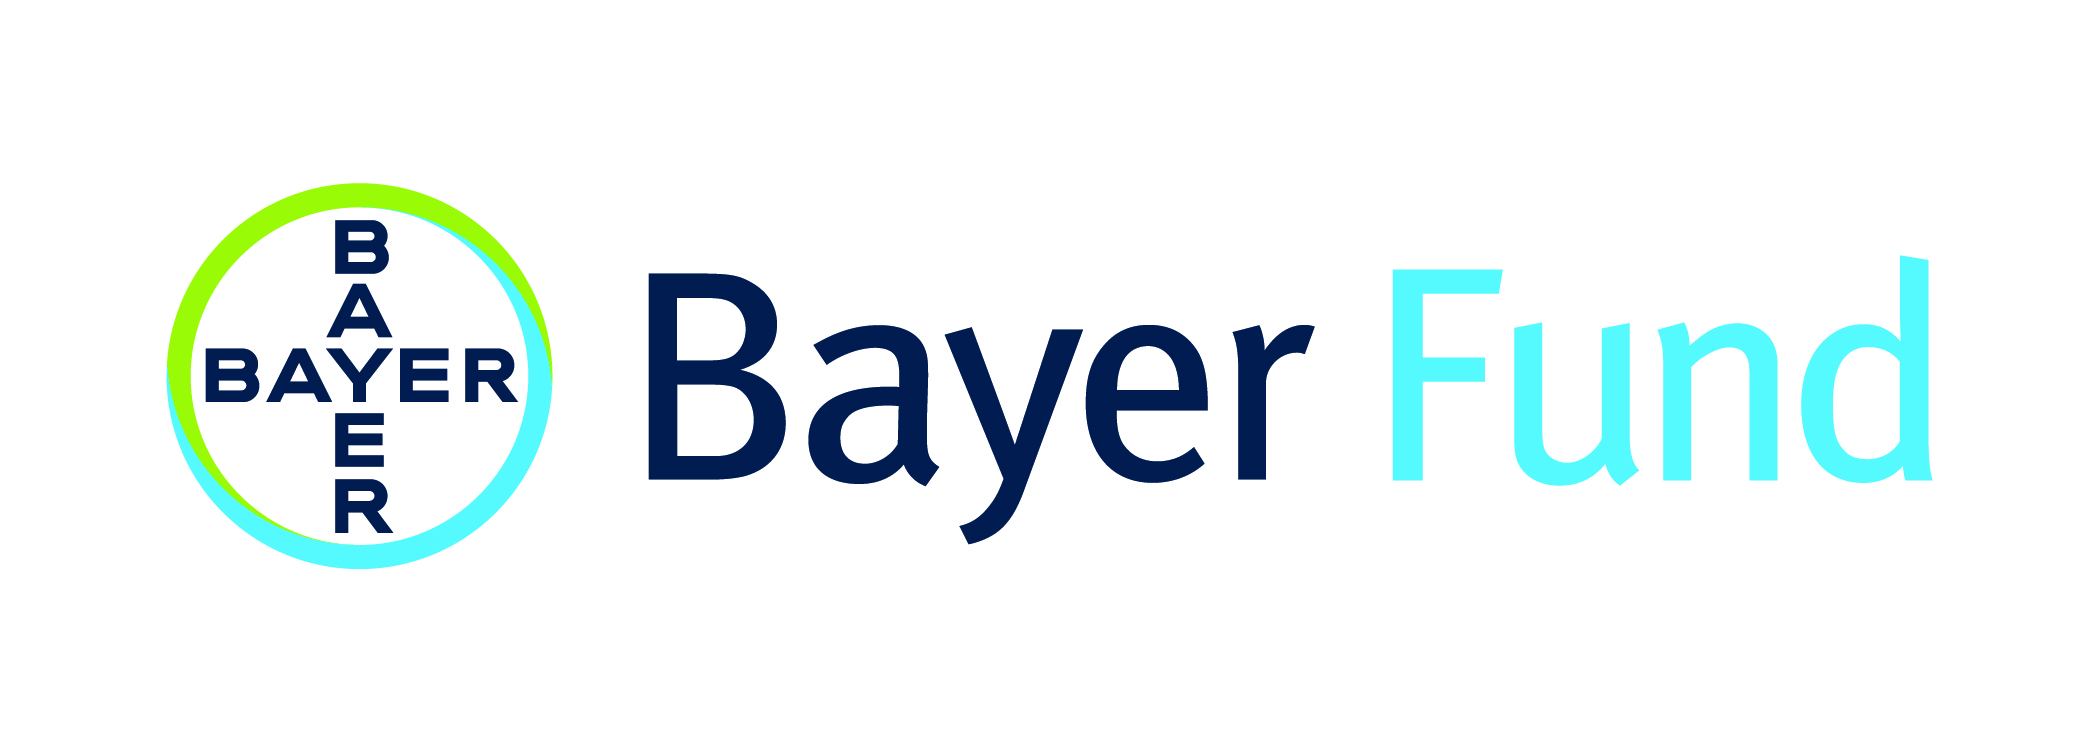 BayerFund_Basic-Color-for-bright-backgrounds.jpg